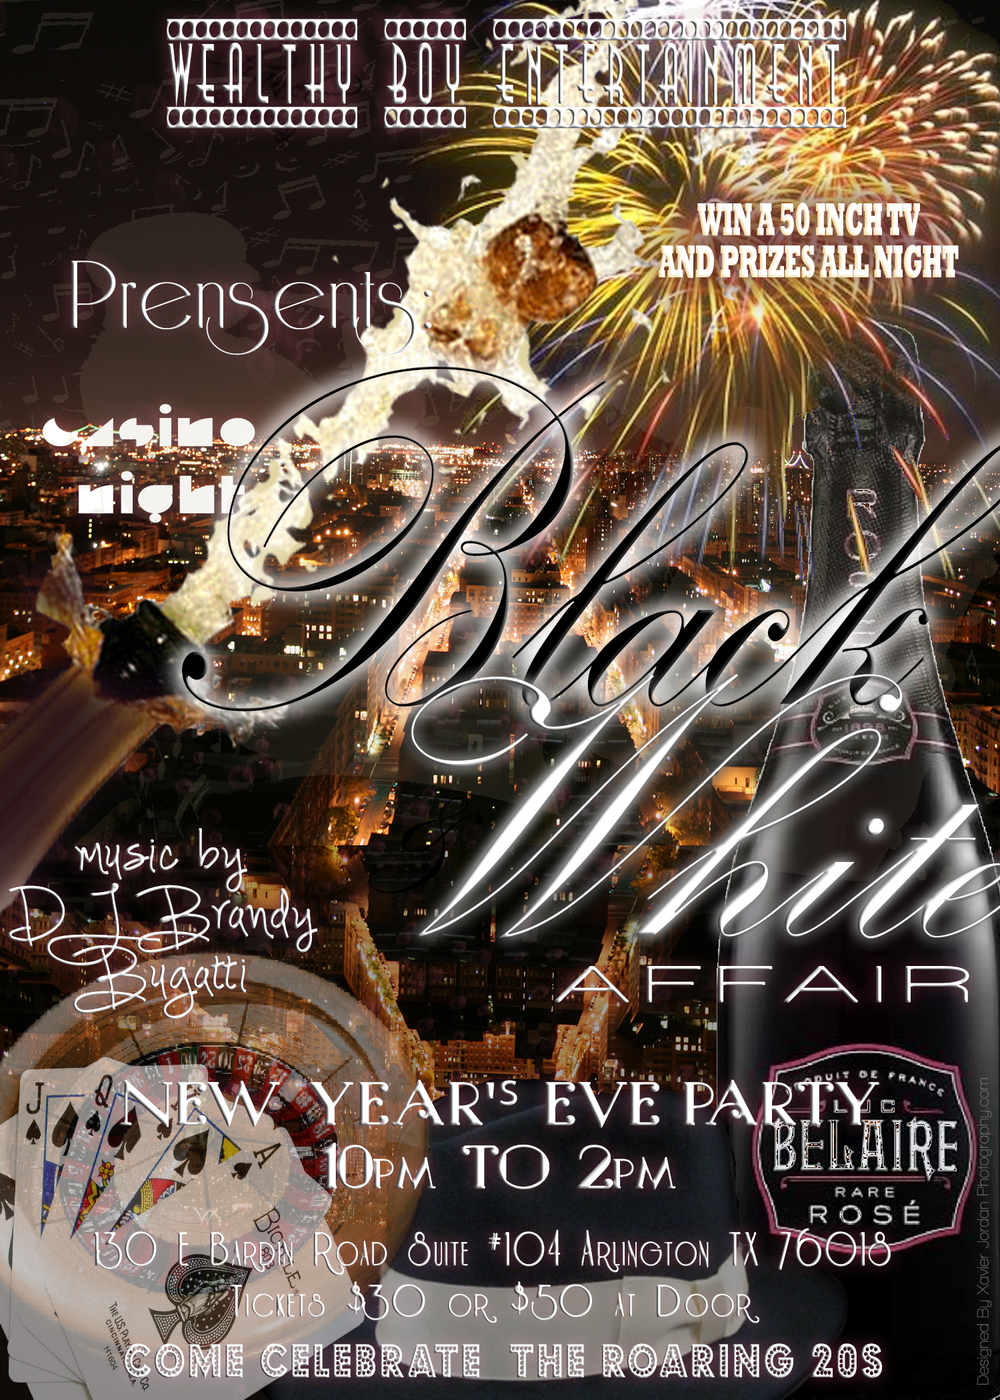 new year eve flyer 13 1 final.jpg